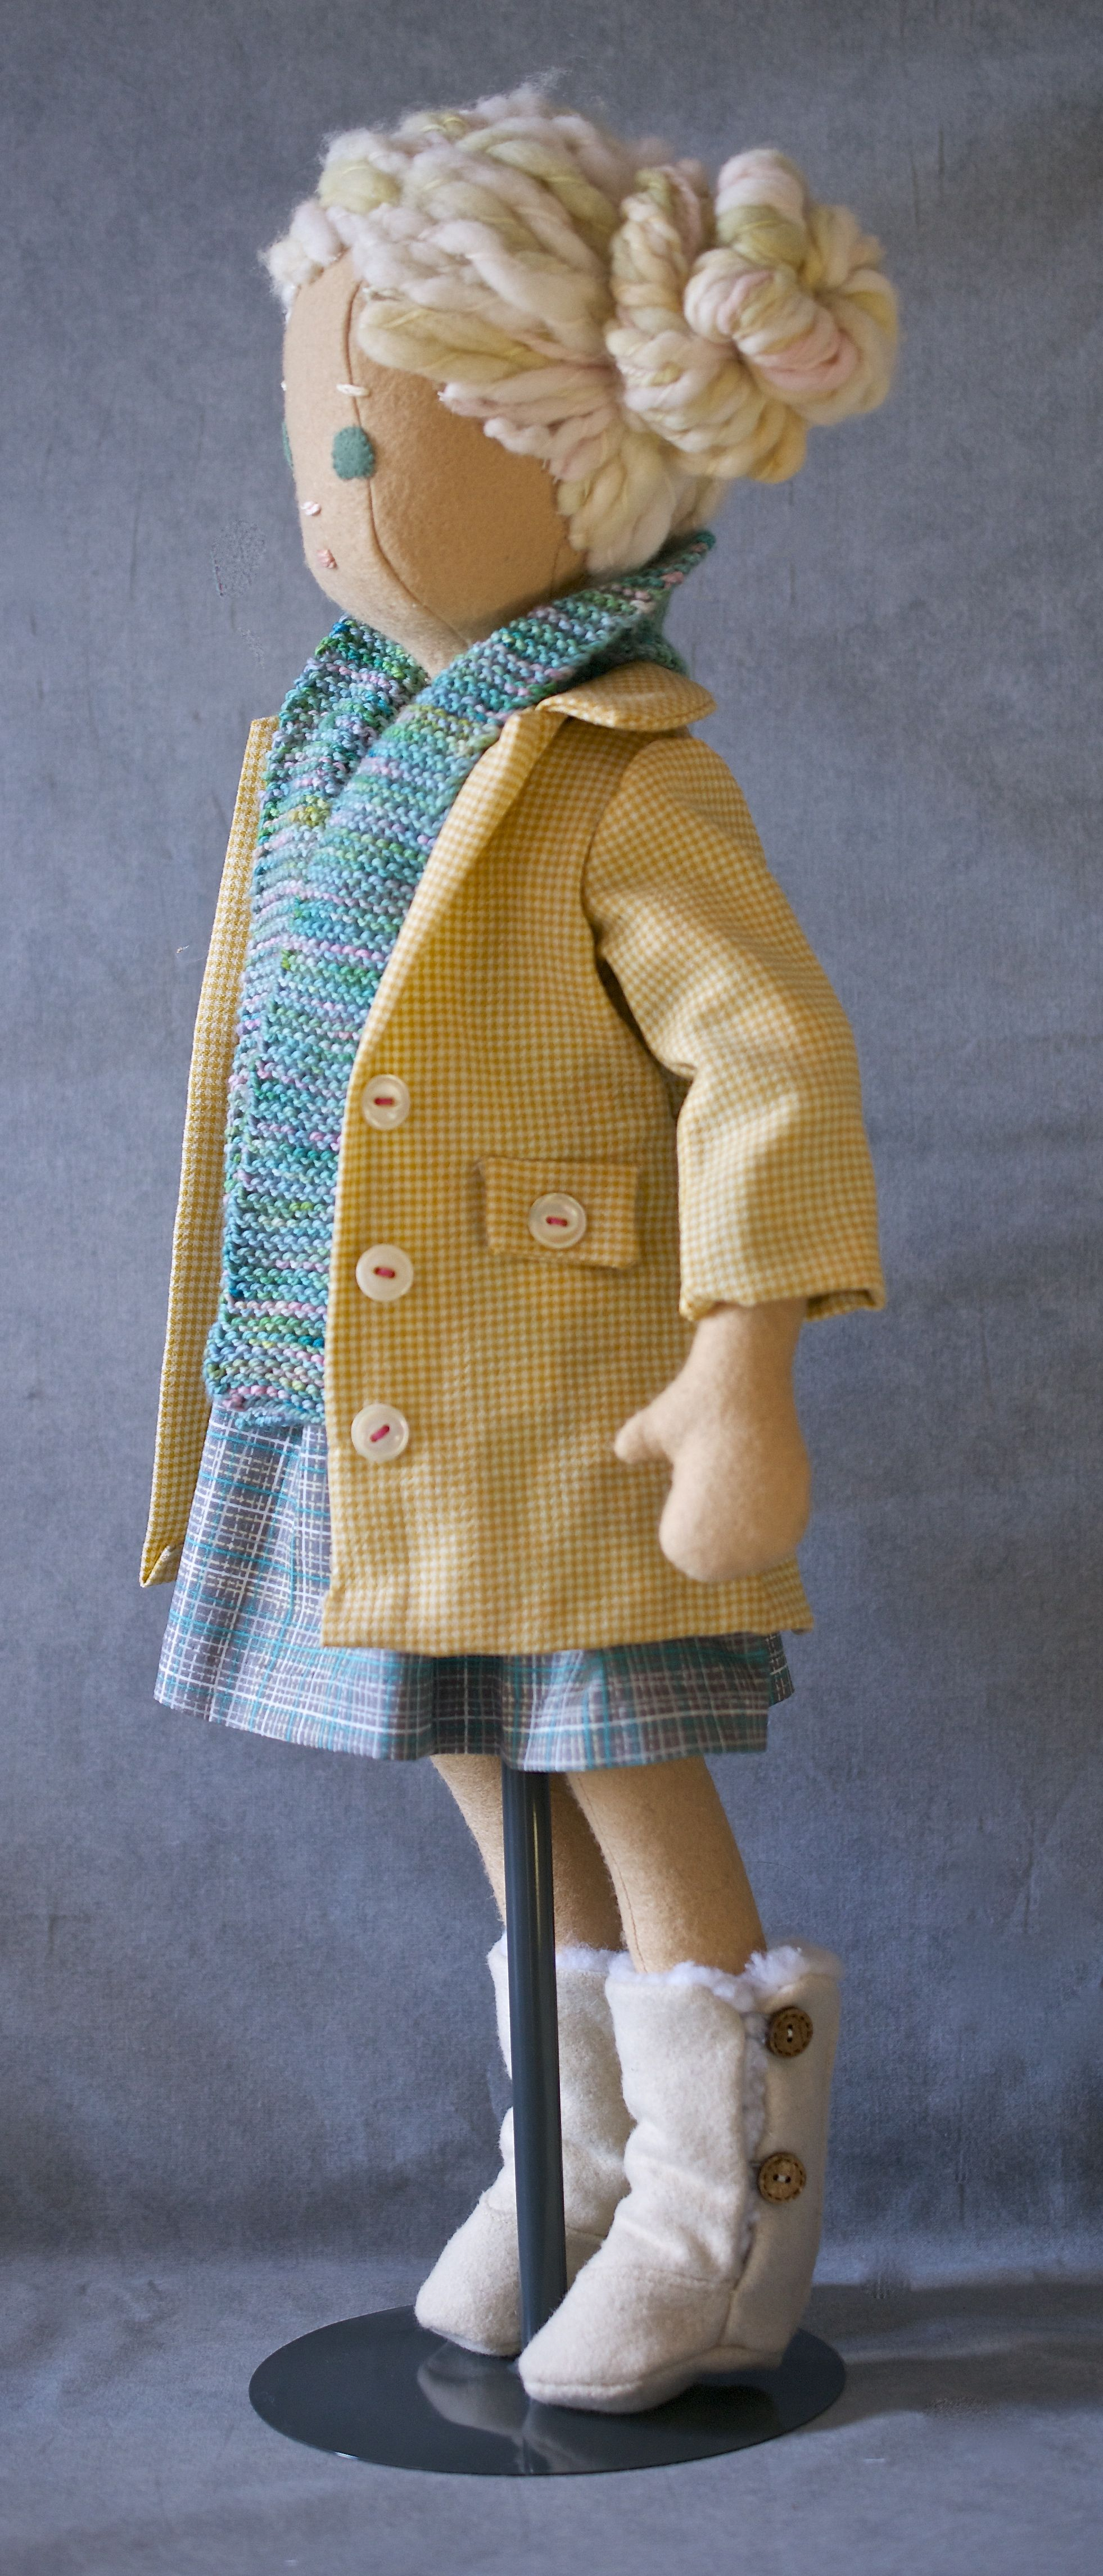 Coat, Scarf and Uggs1.jpg